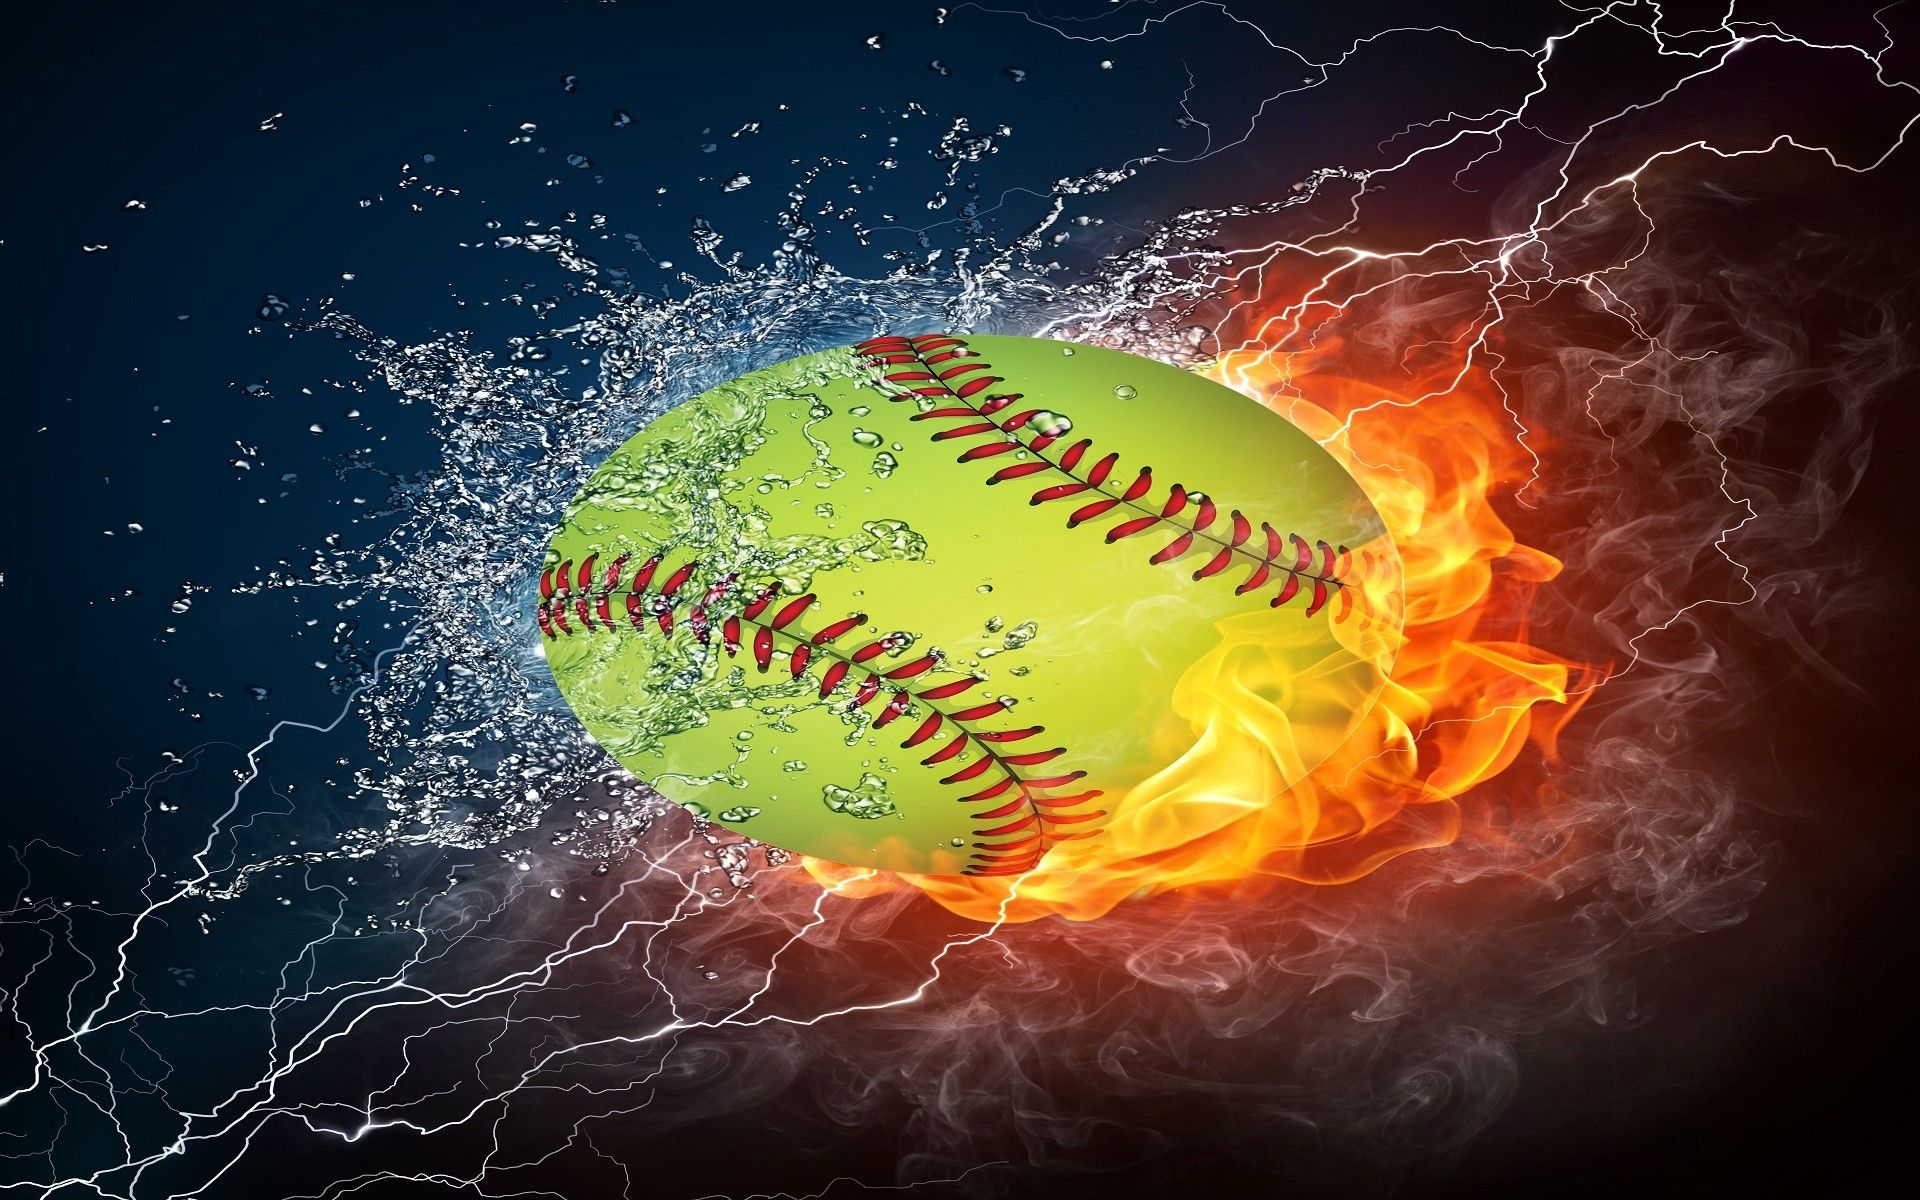 38 Softball Backgrounds Download Free Hd Backgrounds: Top Free Softball Backgrounds